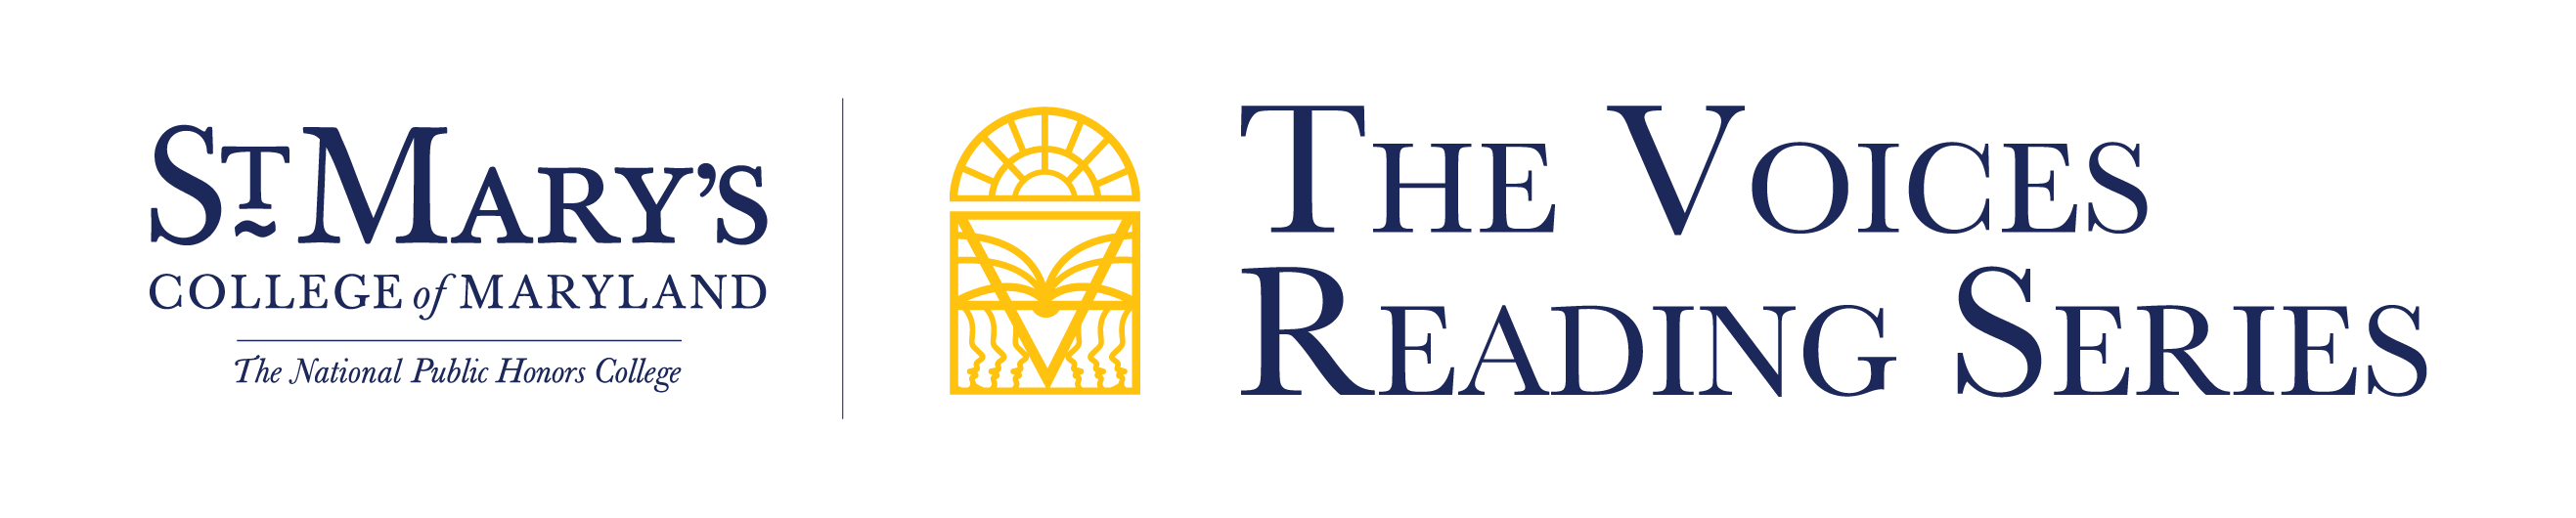 St. Mary's College of Maryland, The National Public Honors College, The Voices Reading Series, logo